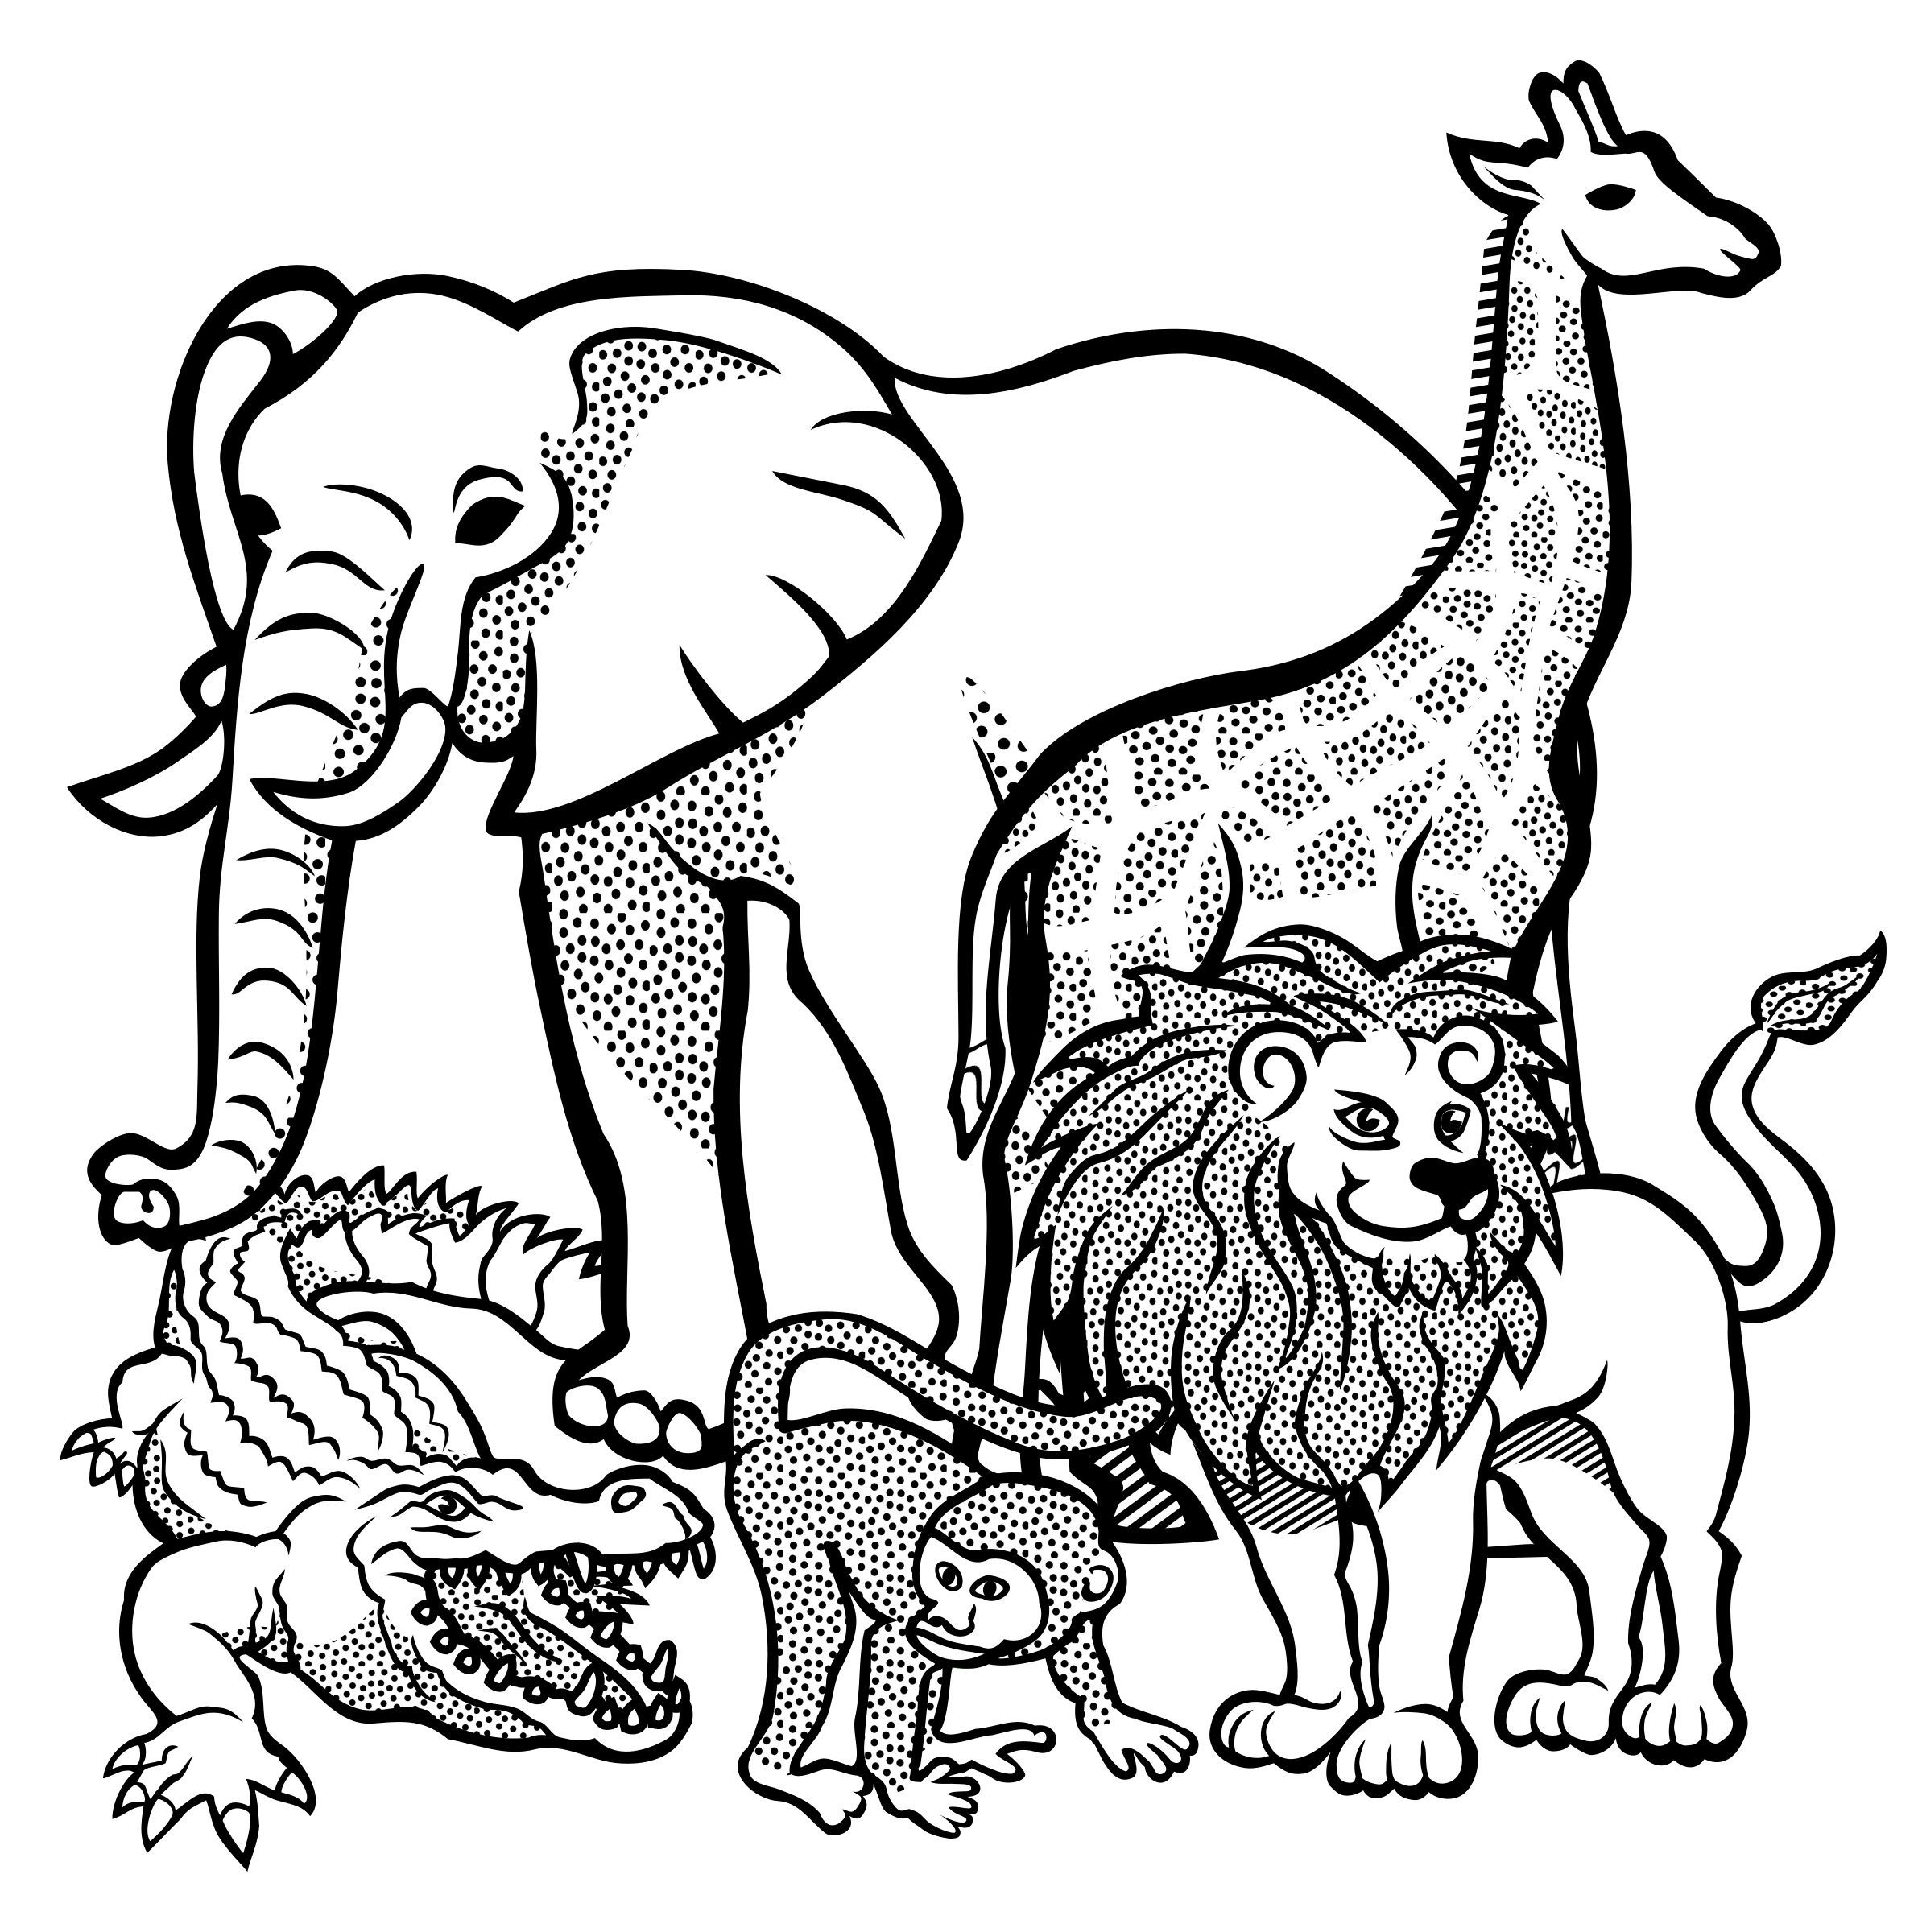 Free Jungle Clipart Black And White, Download Free Clip Art.